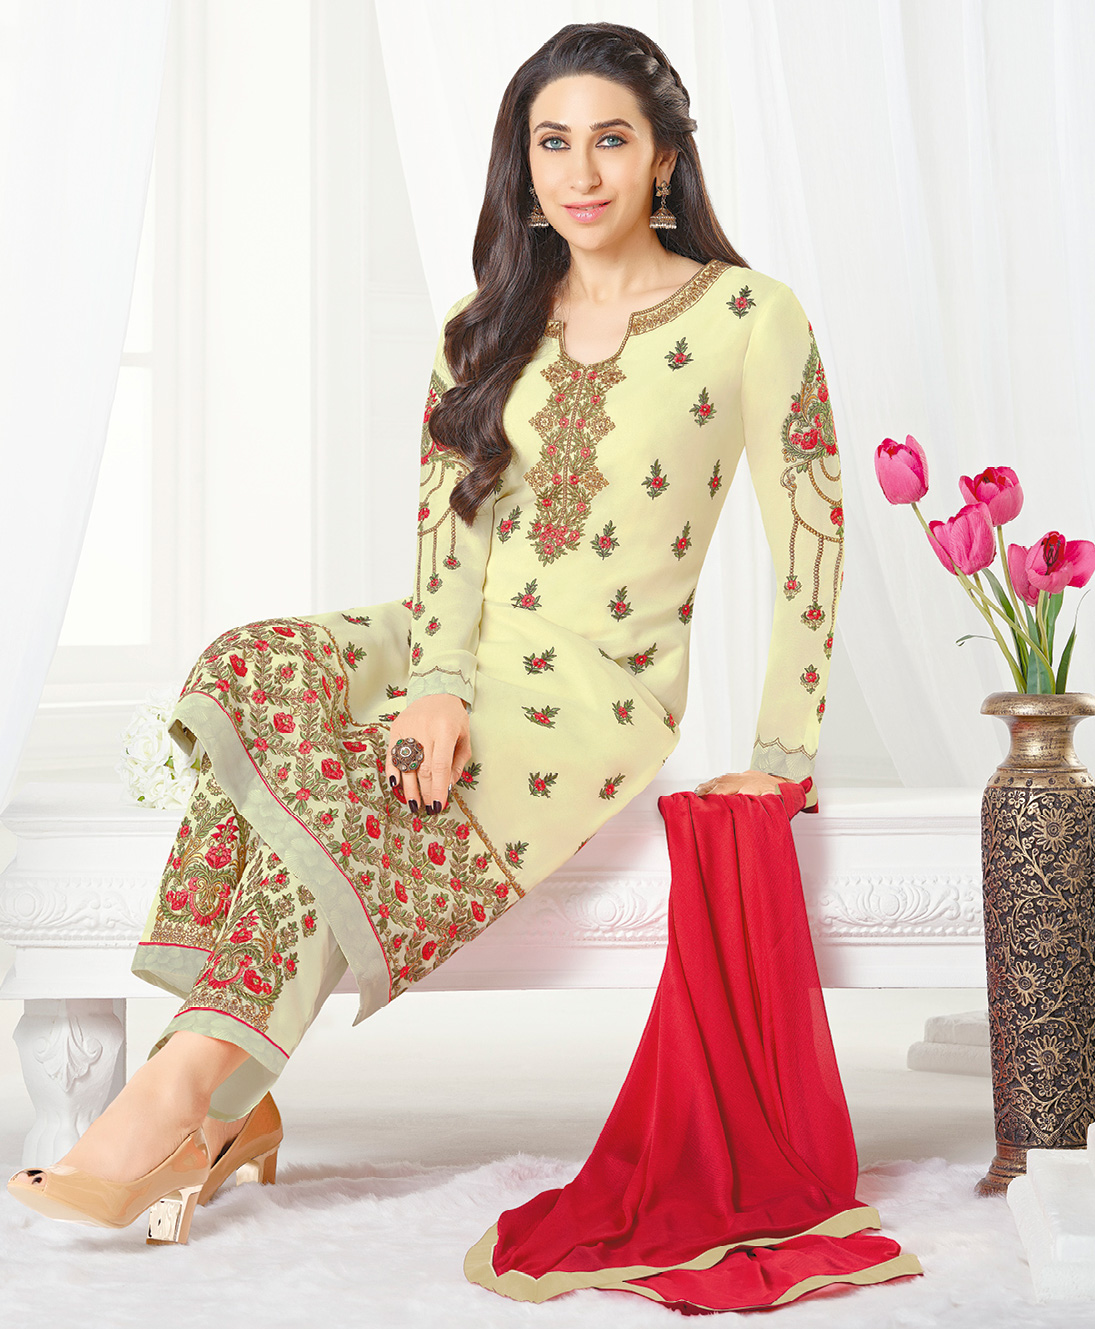 Regal Off-White Designer Embroidered Faux Georgette Salwar Suit